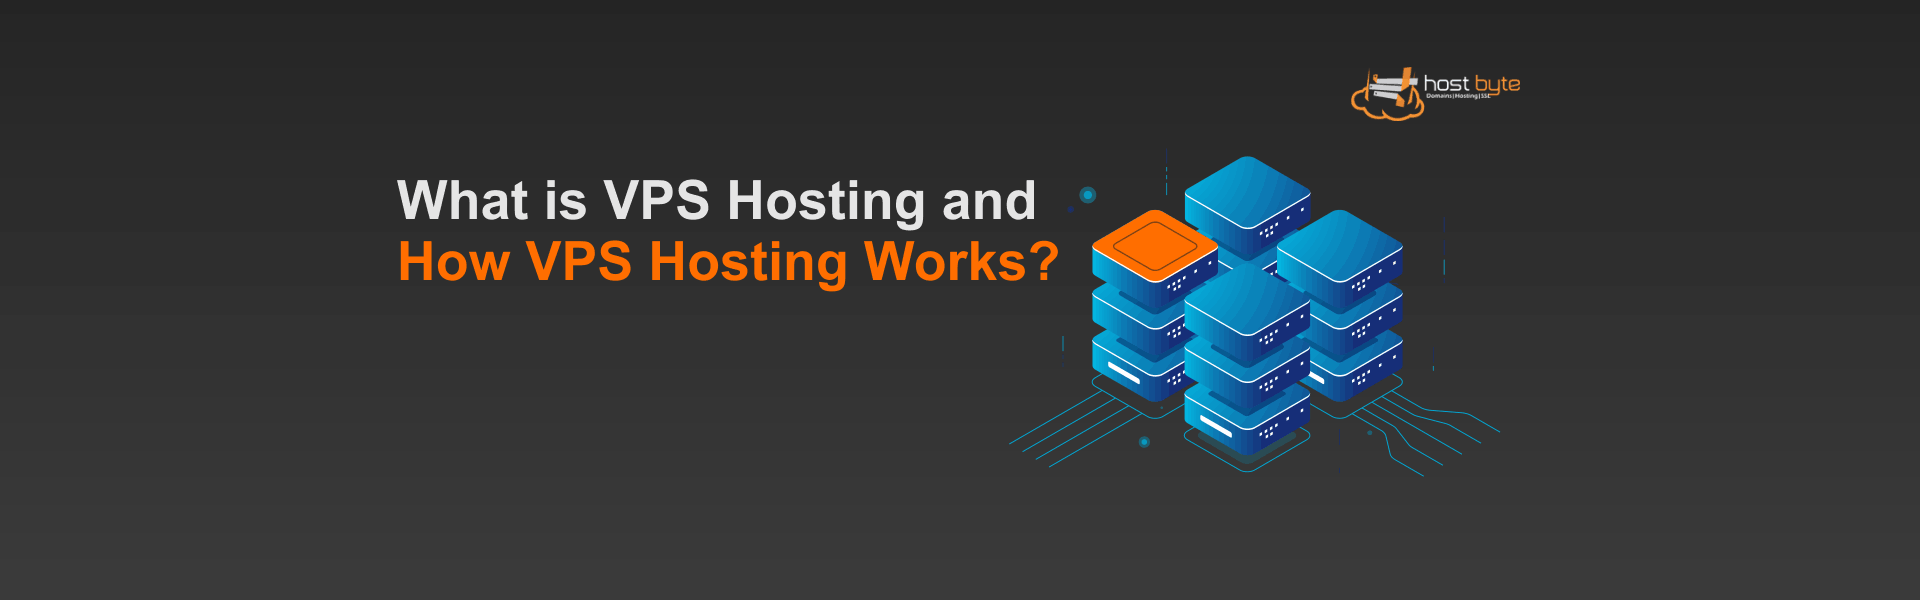 What is VPS Hosting and How VPS Hosting Works?